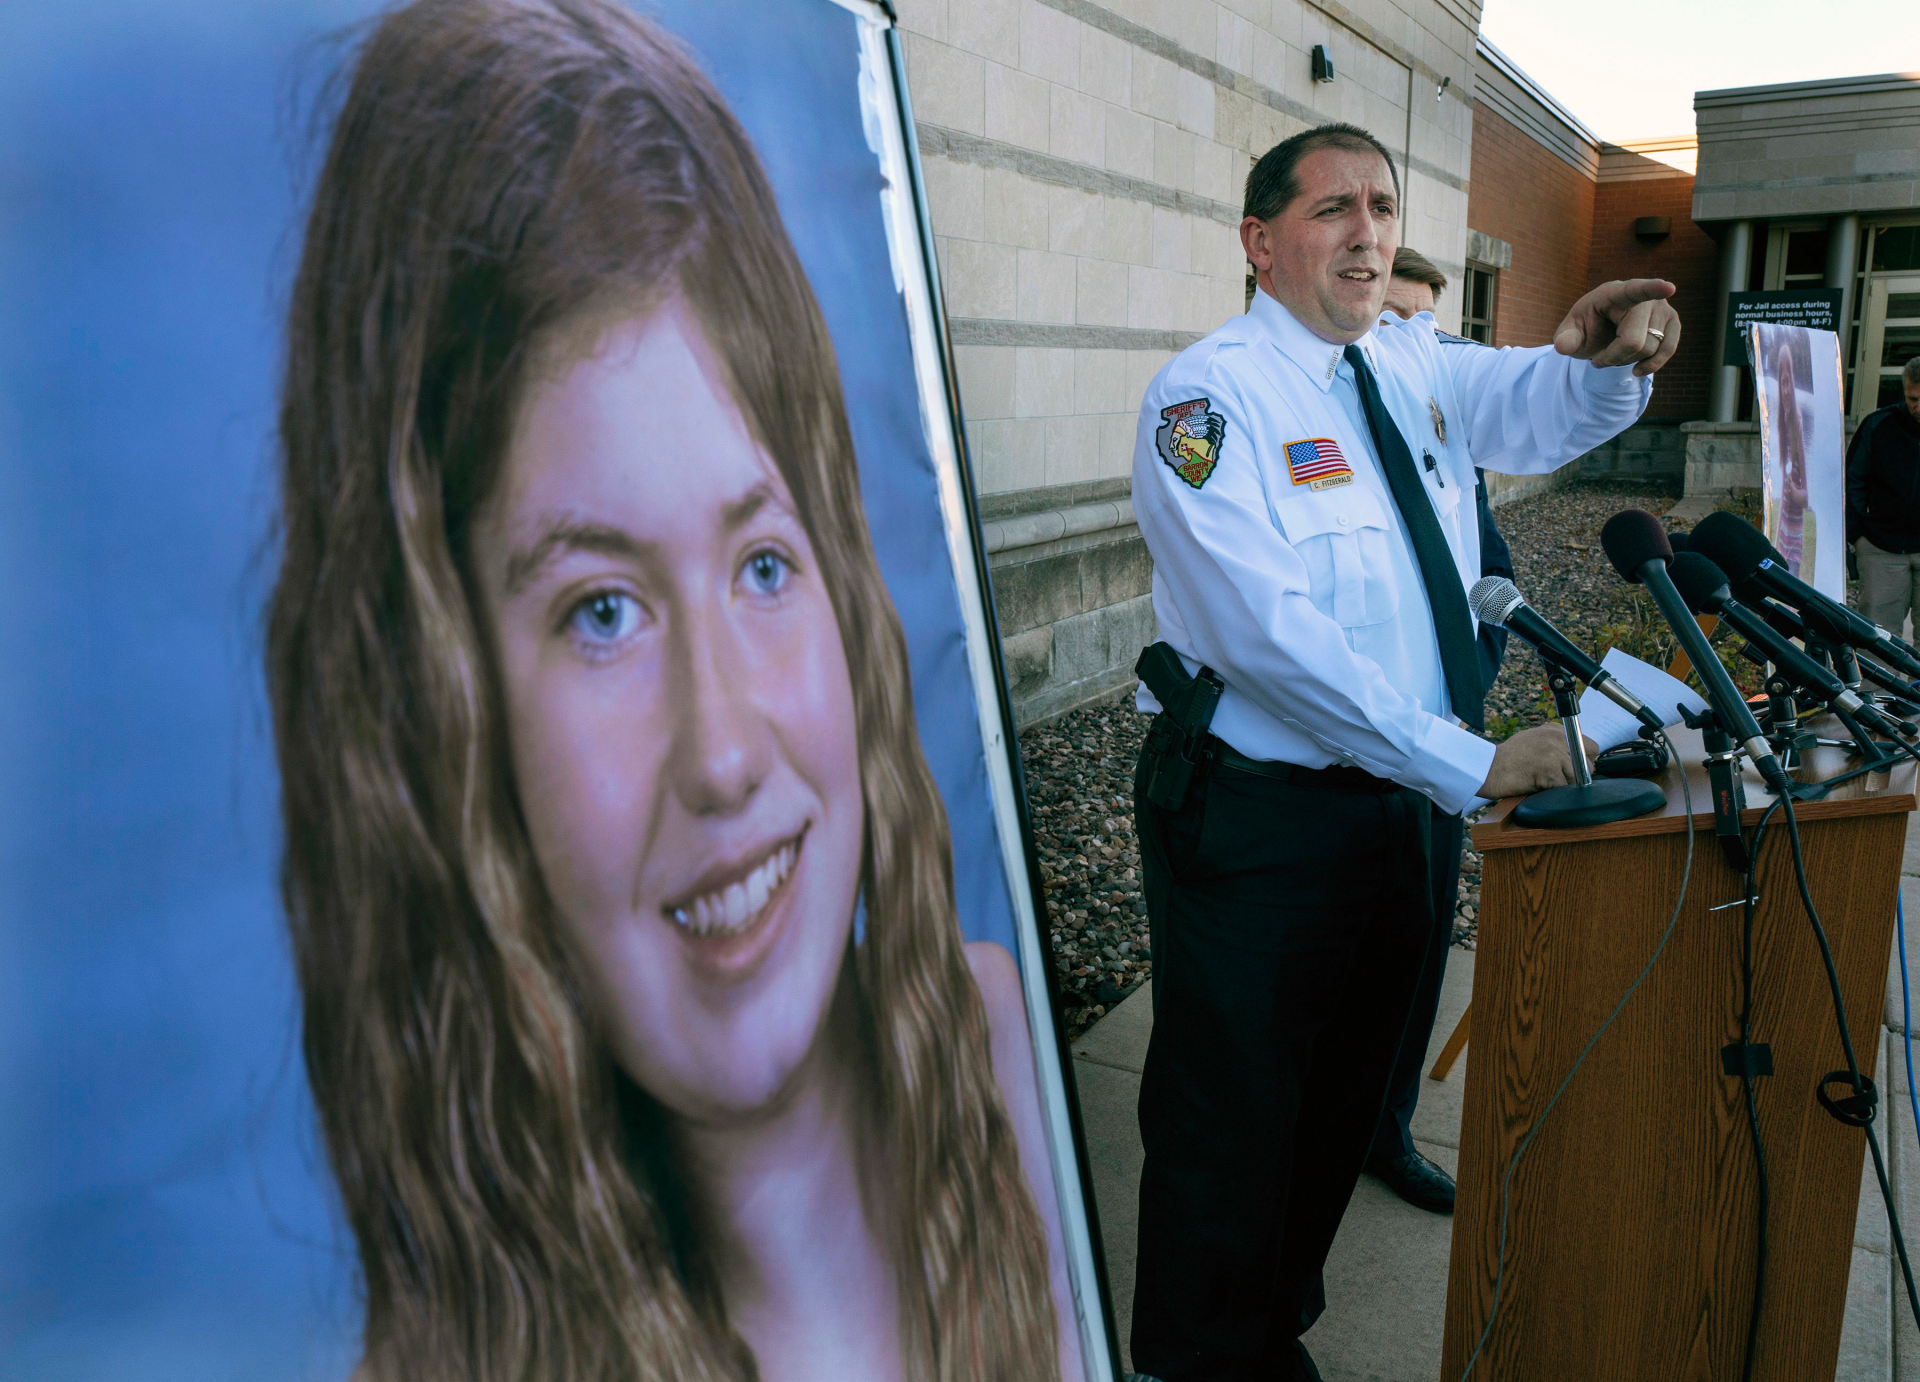 Jayme Closs, 1 year after her kidnapping and parents' murder: 'I feel stronger every day'